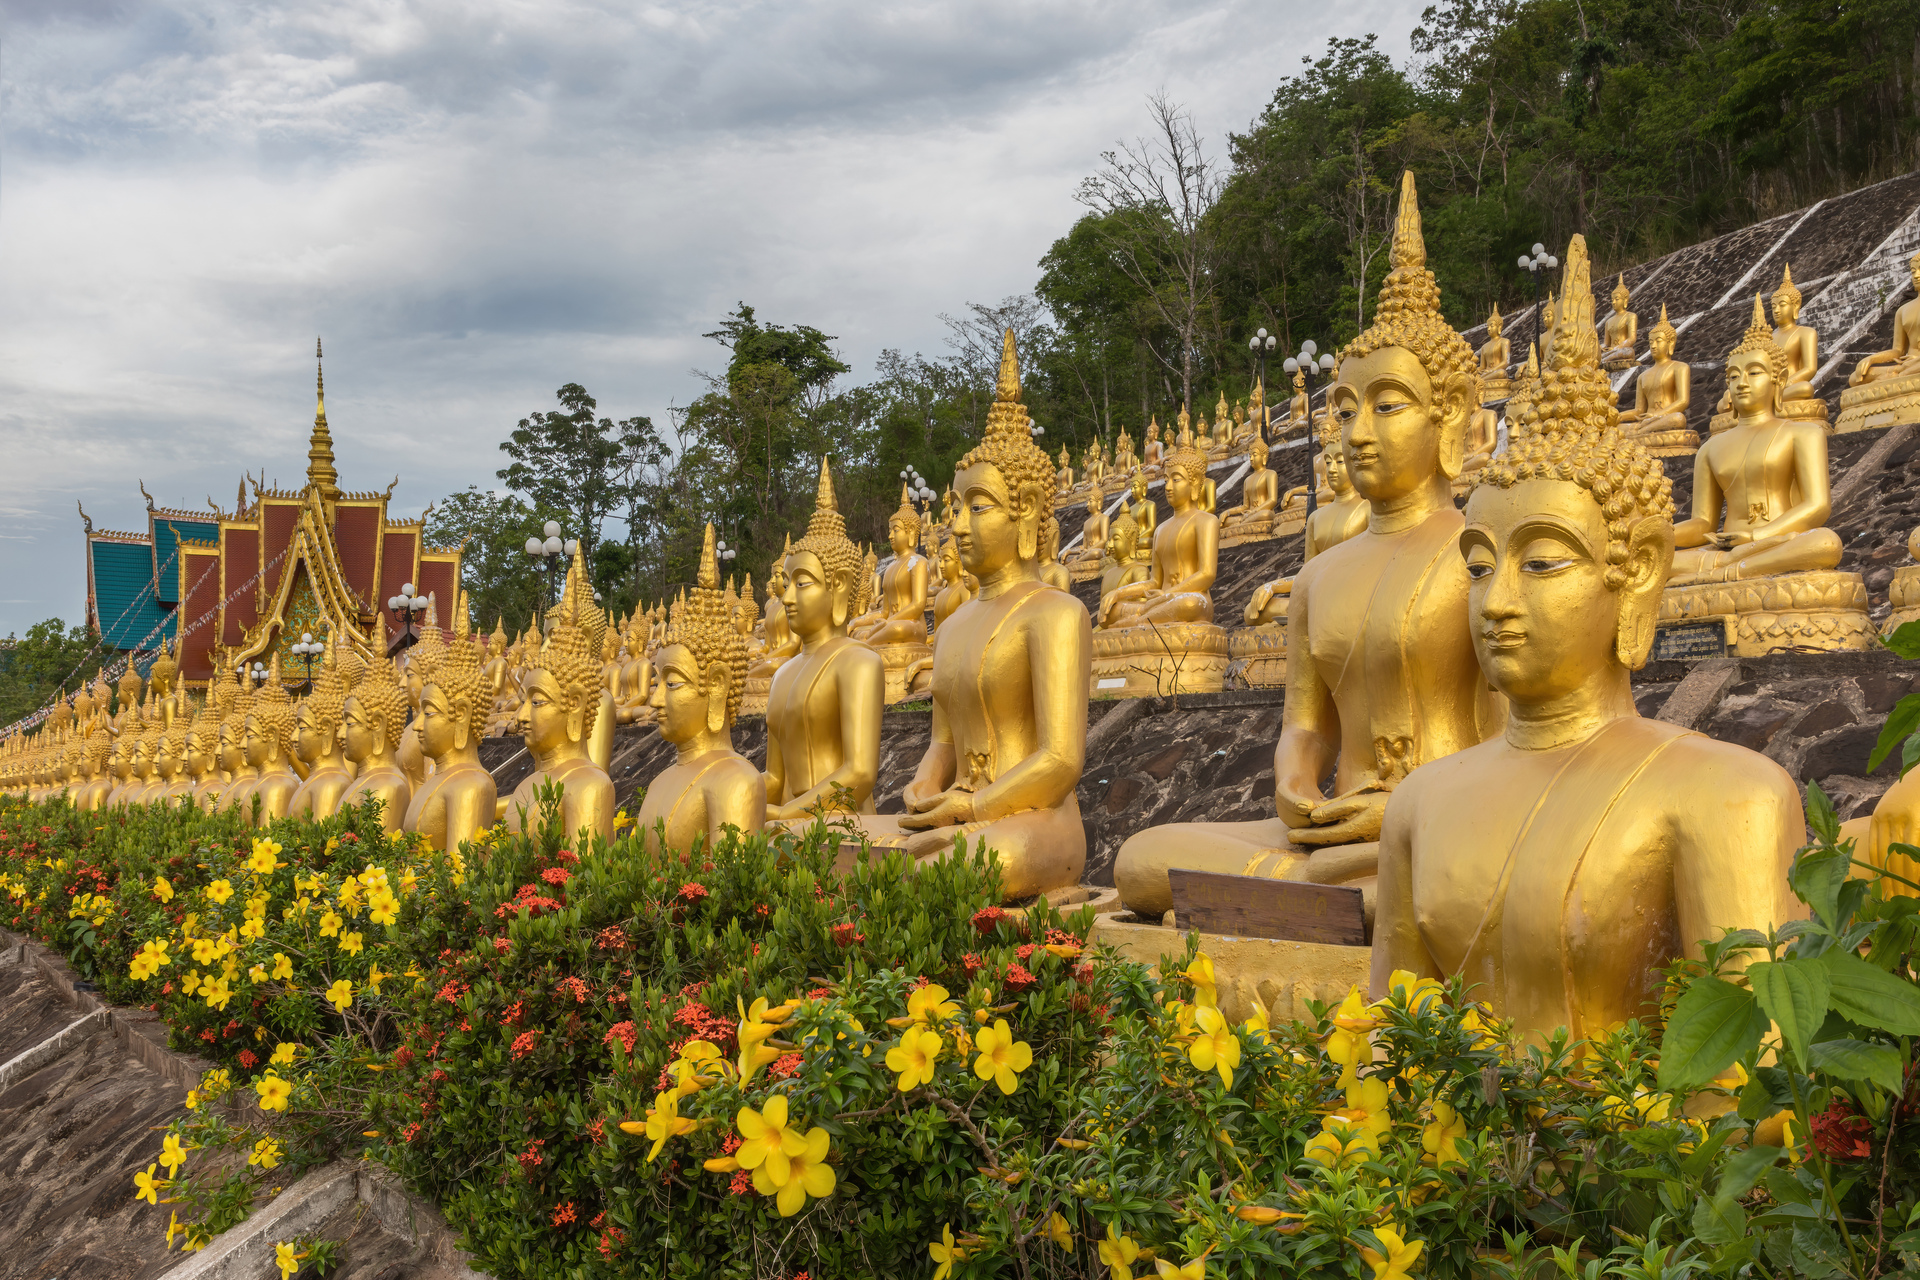 Multiple_rows_of_golden_statues_of_the_Buddha_seated_with_flowers,_at_Wat_Phou_Salao,_Pakse,_Laos.jpg